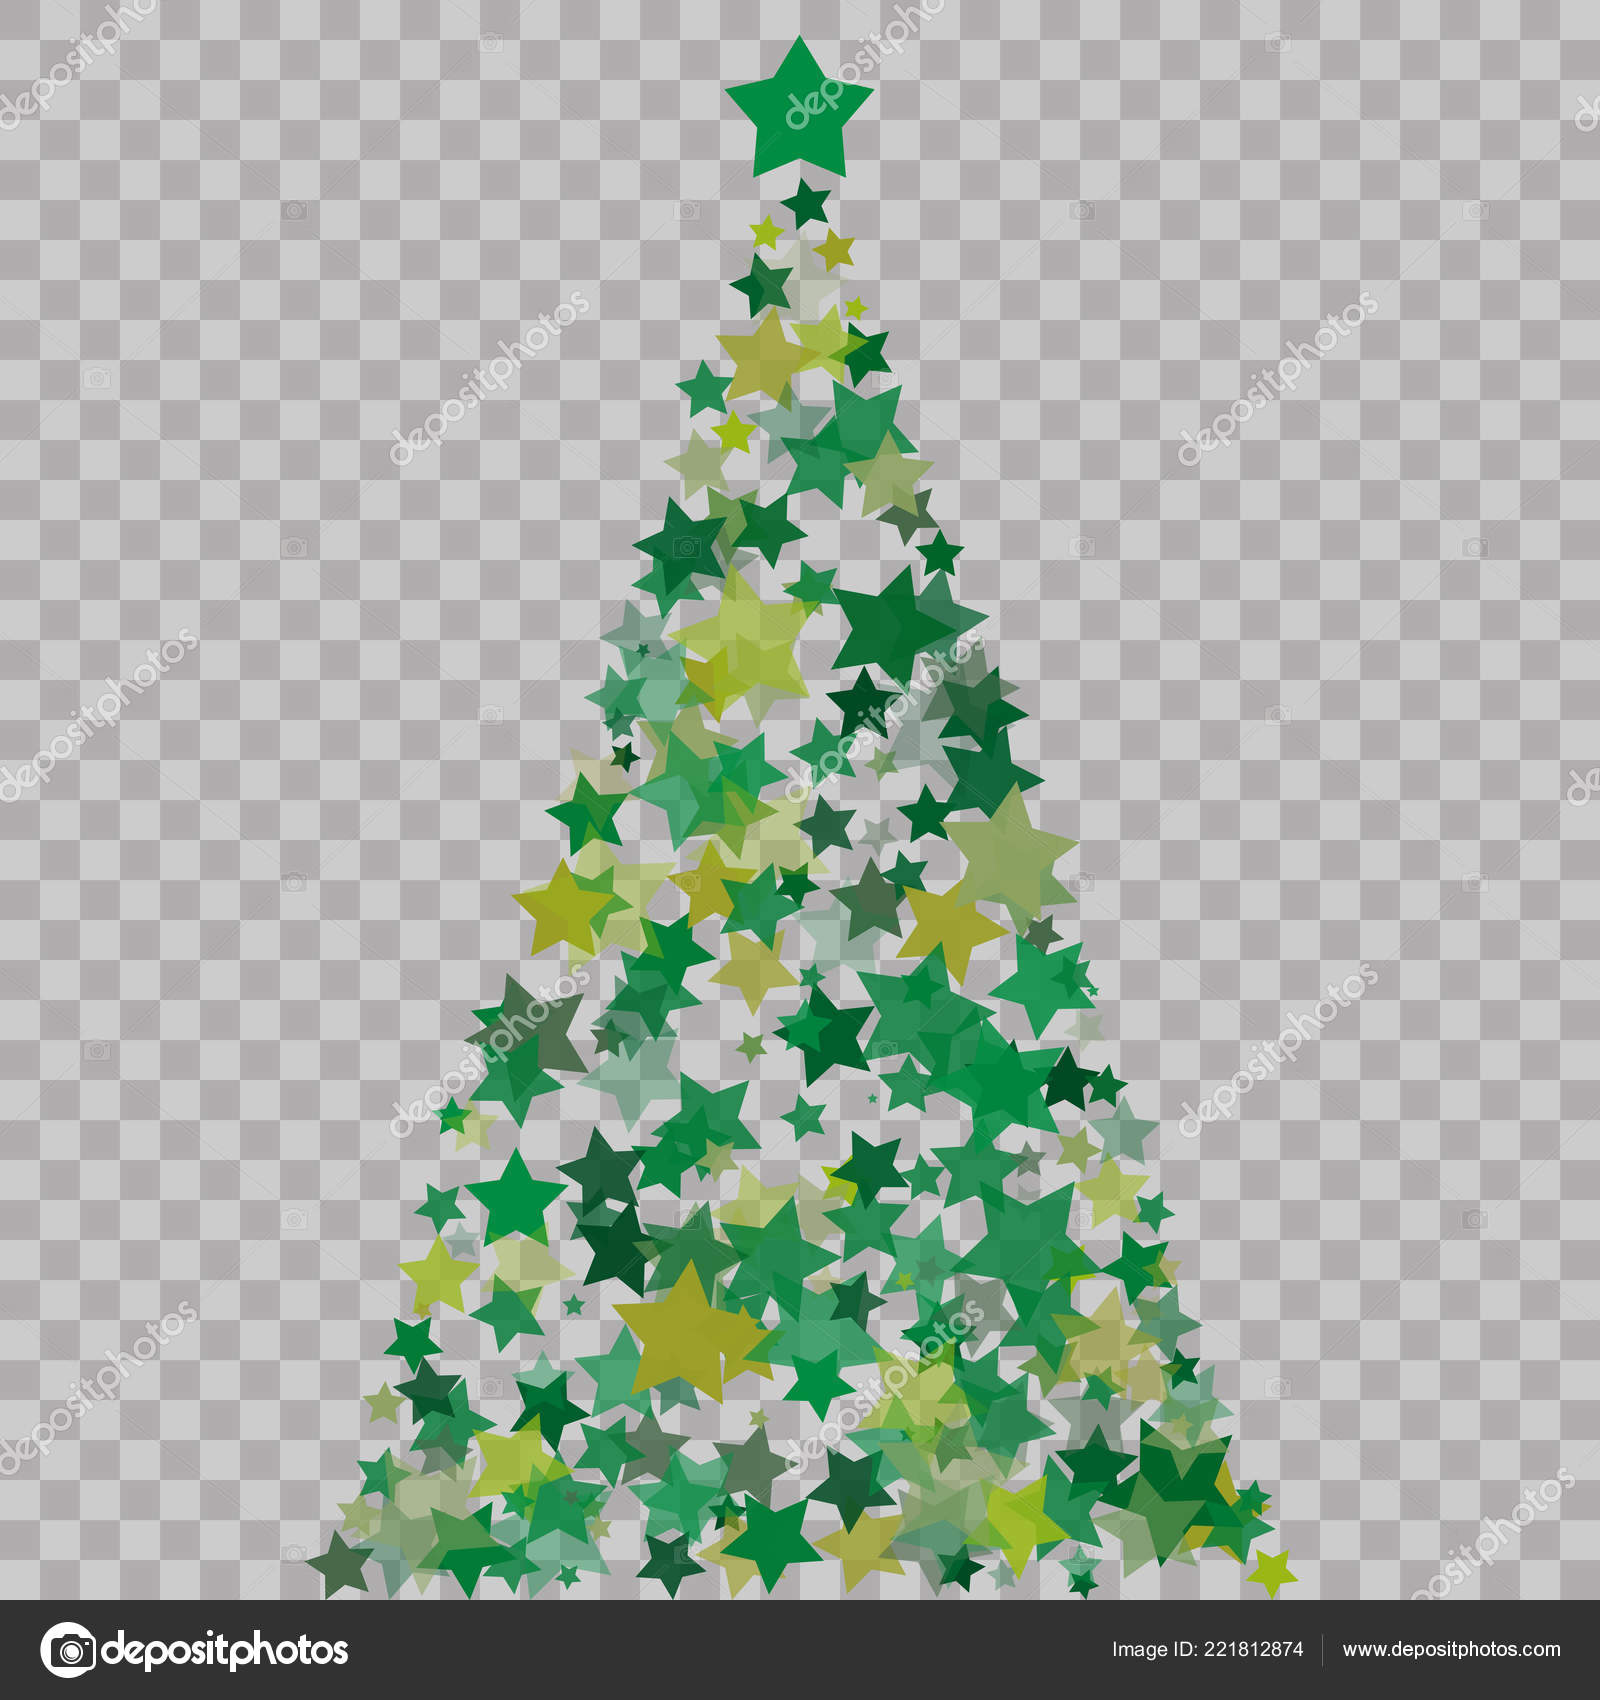 Christmas Tree Of Stars On The Transparent Background Green